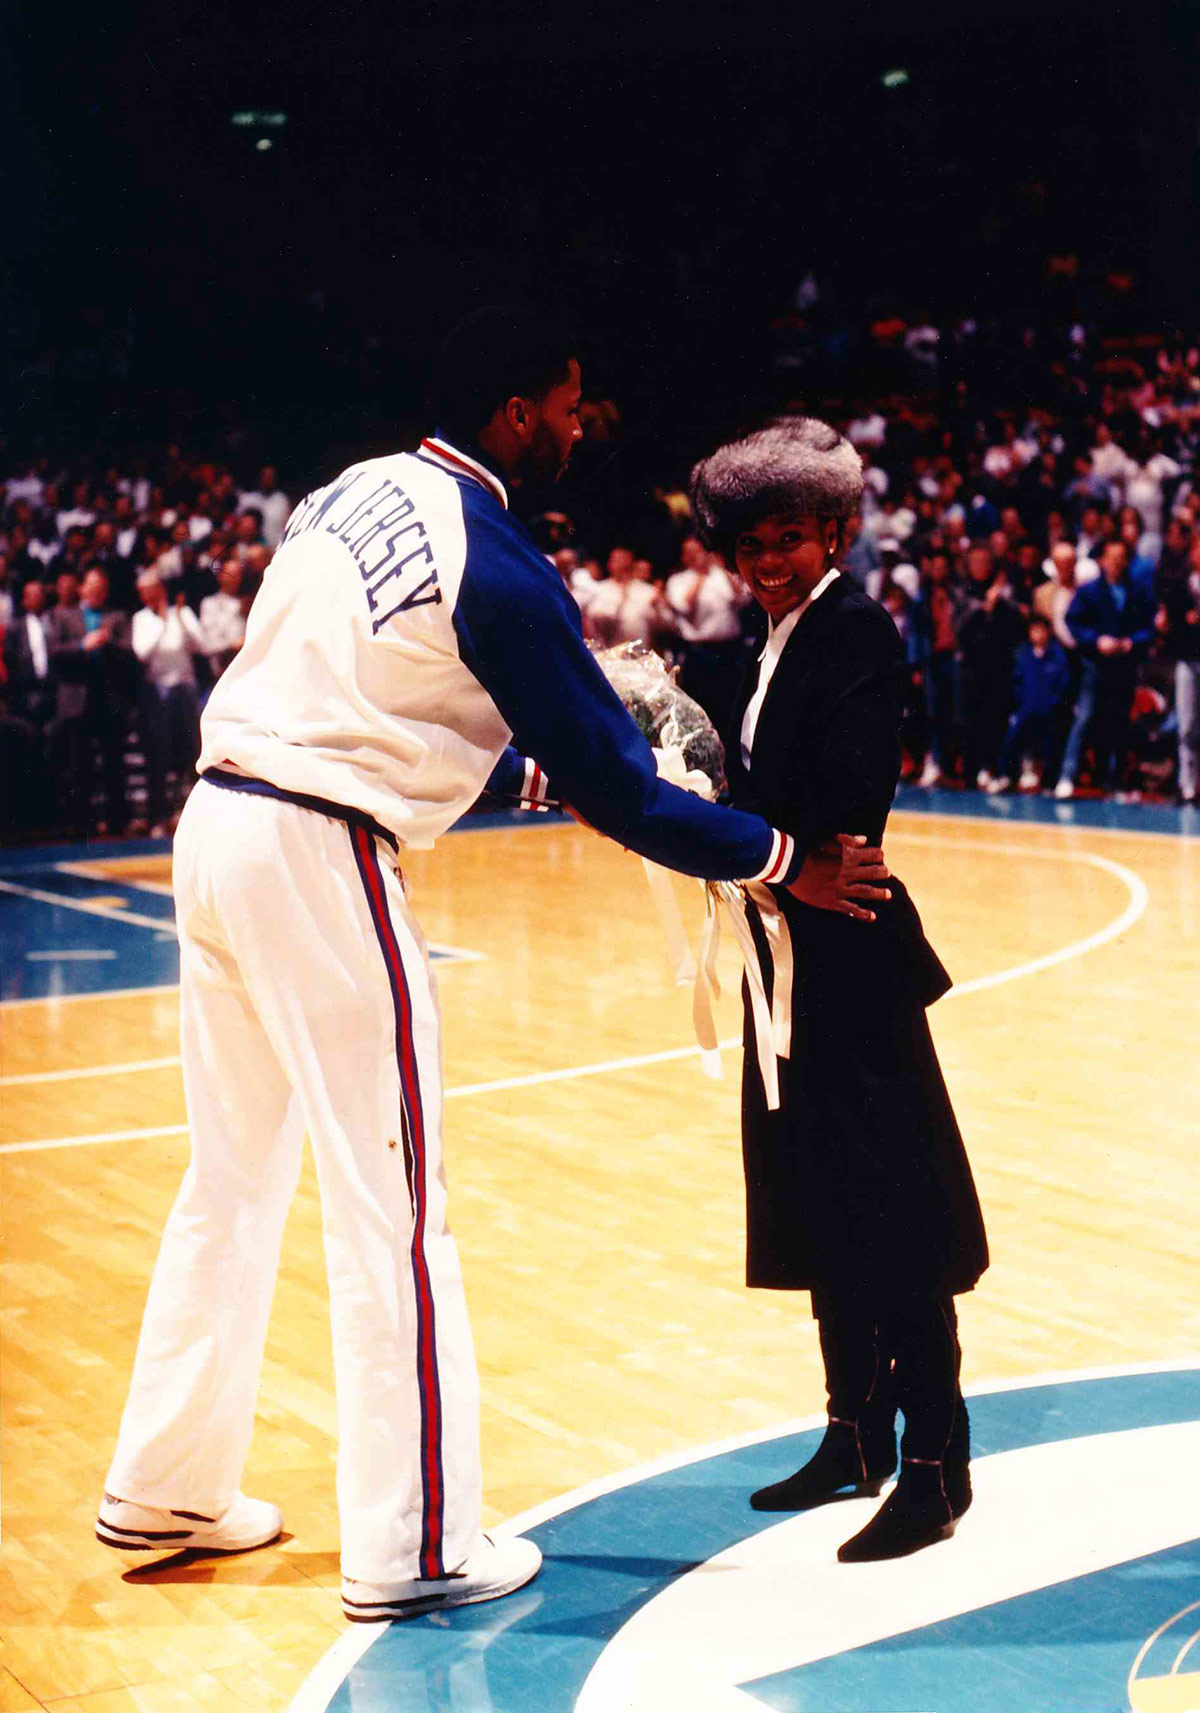 Whitney Houston sings The Star Spangled Banner before a Nets-Lakers basketball game on December 14, 1988